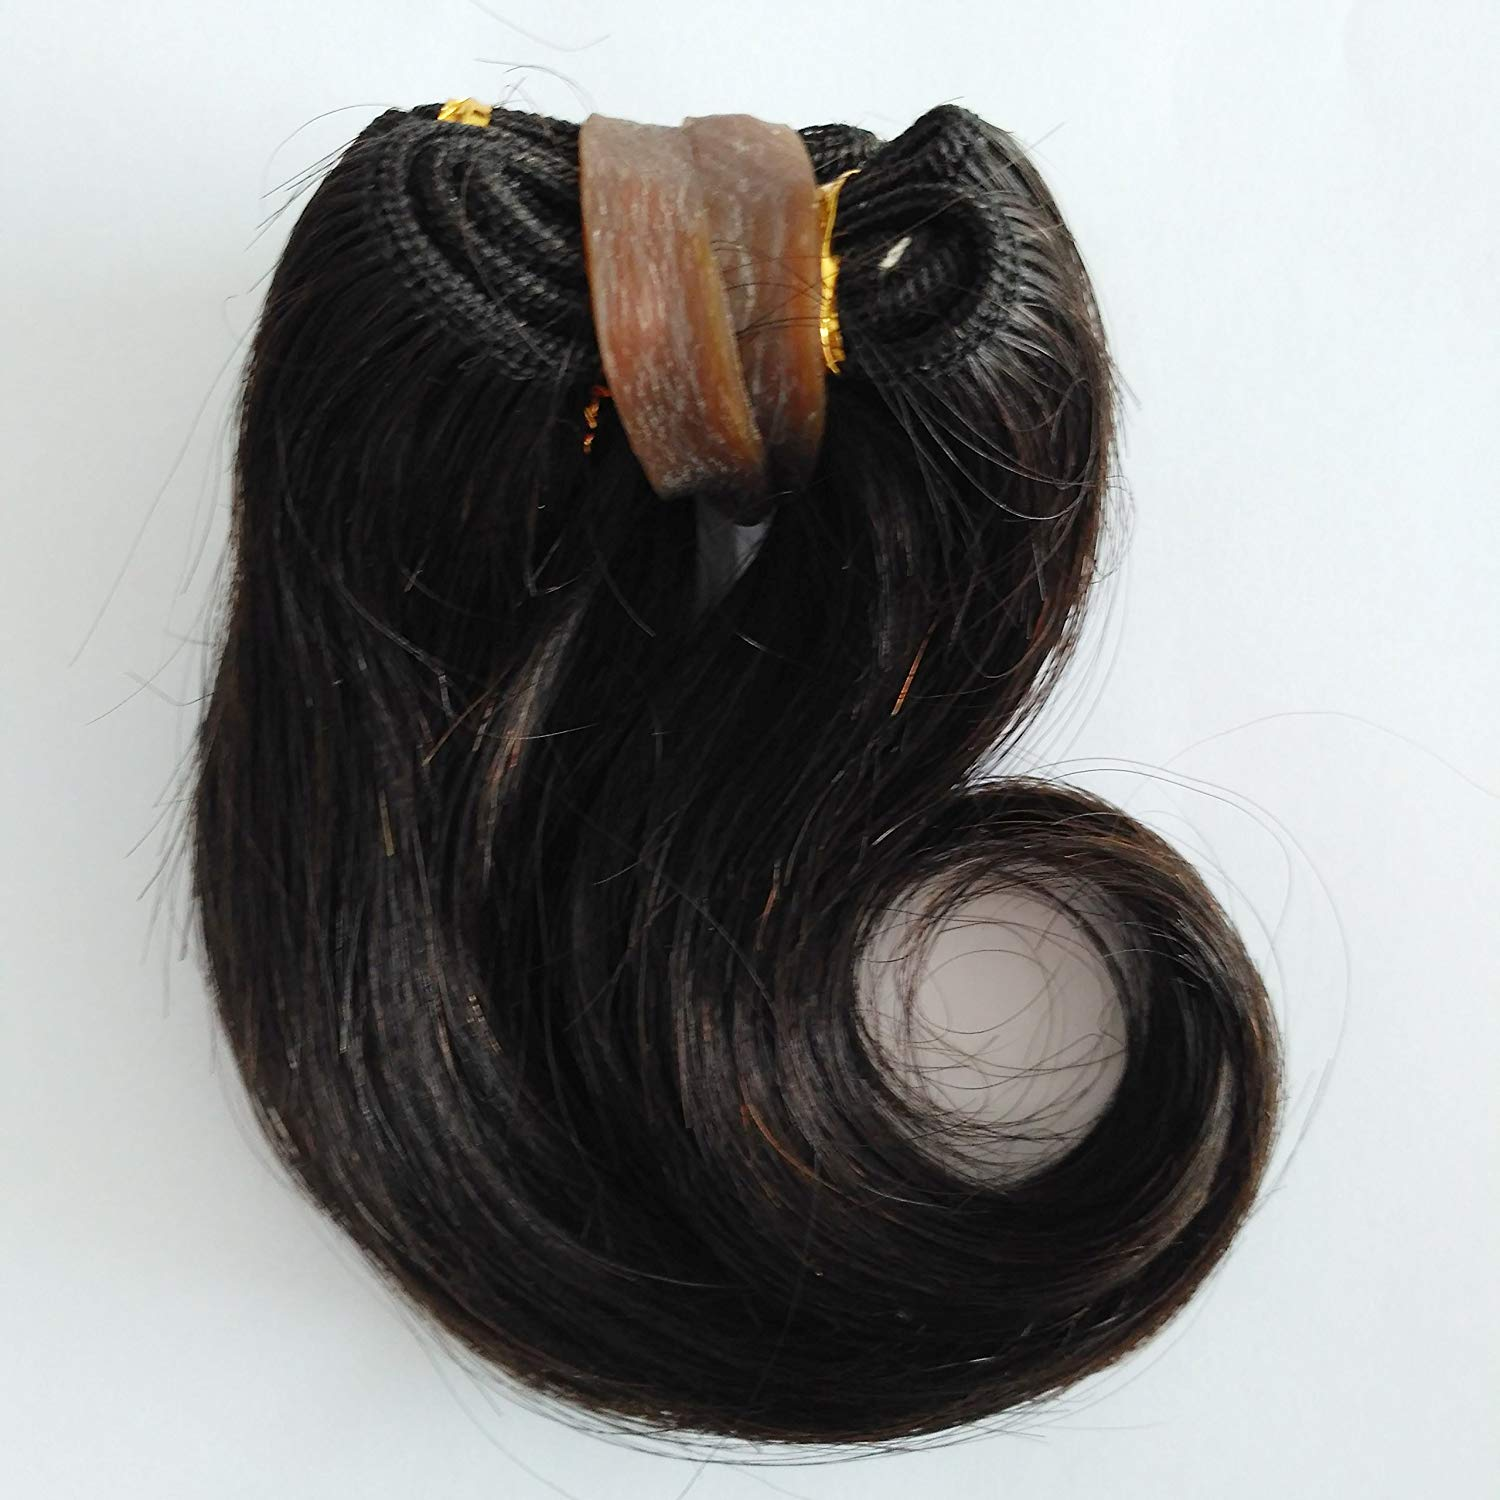 Cheap Wavy 18 Inch Weave Find Wavy 18 Inch Weave Deals On Line At